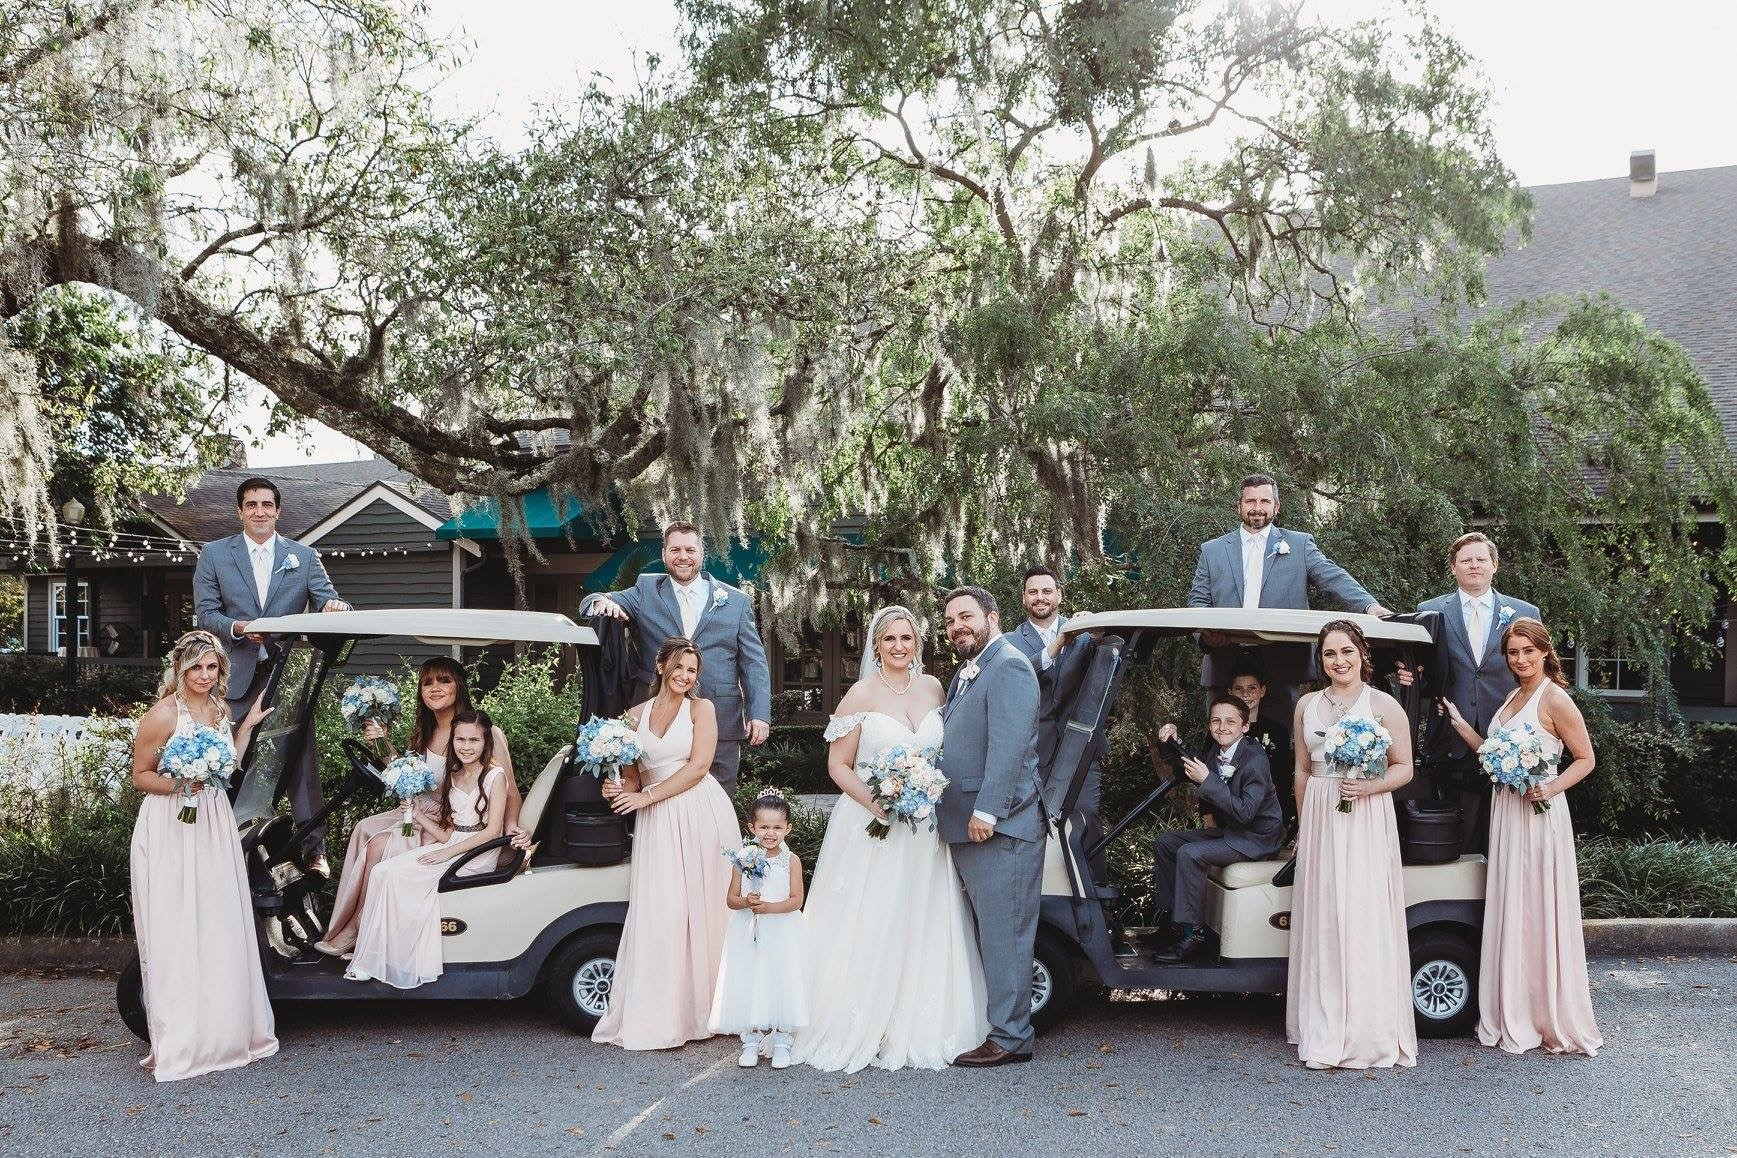 wedding party posing with golf carts